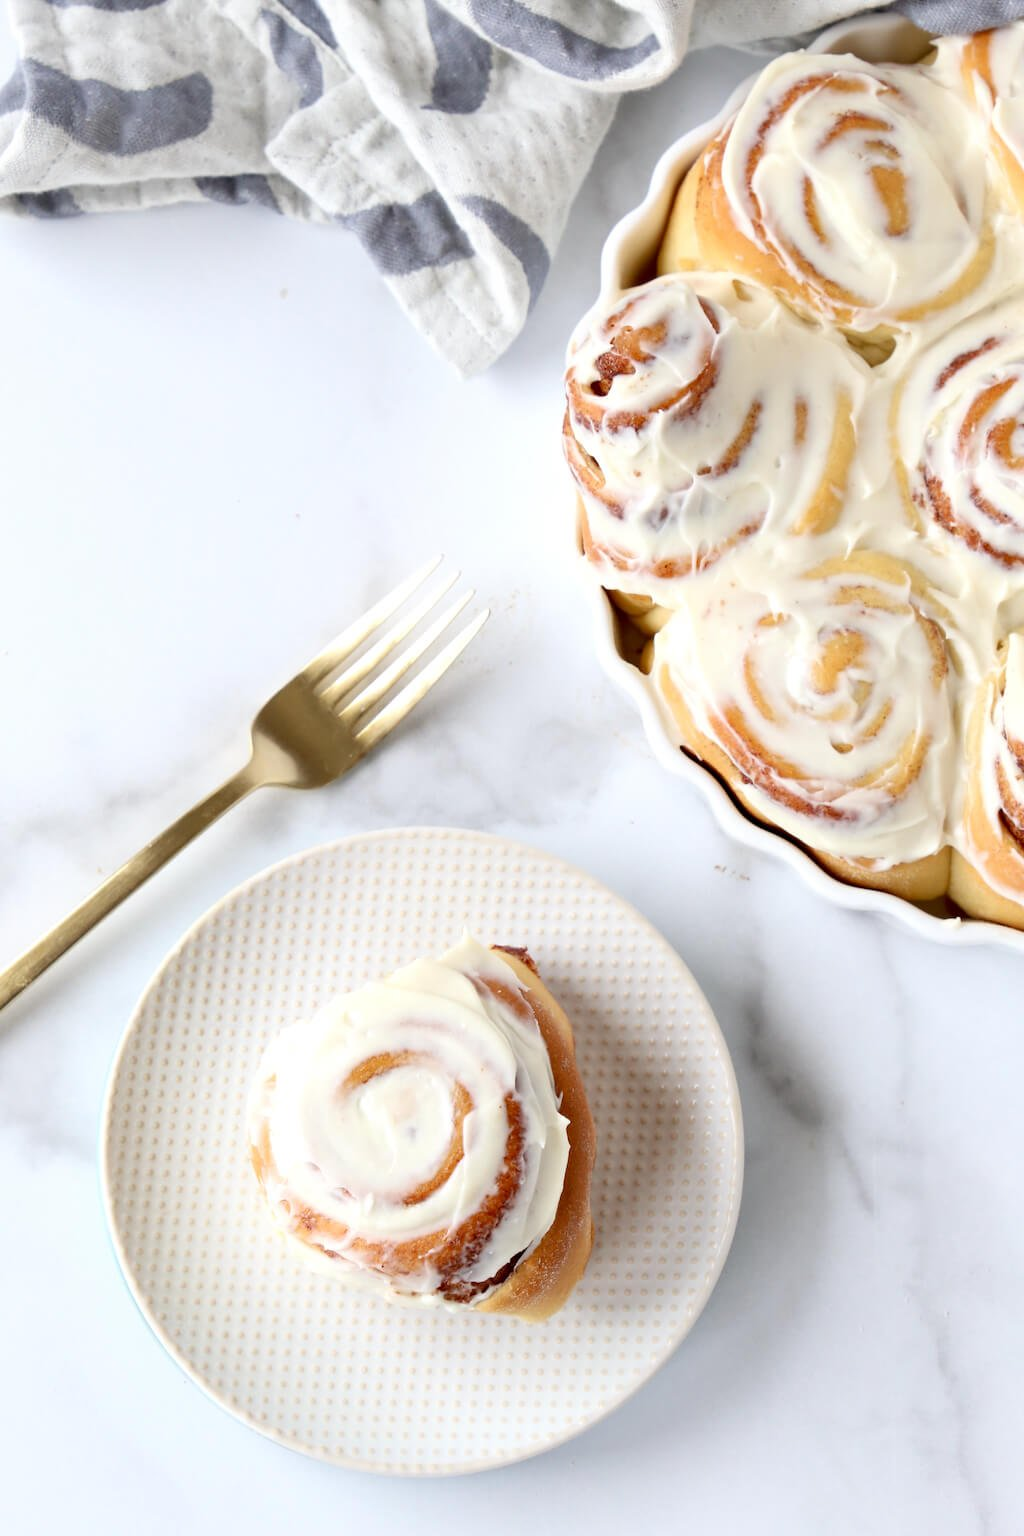 a small plate with one cinnamon roll next to a platter of cinnamon rolls and a gold fork